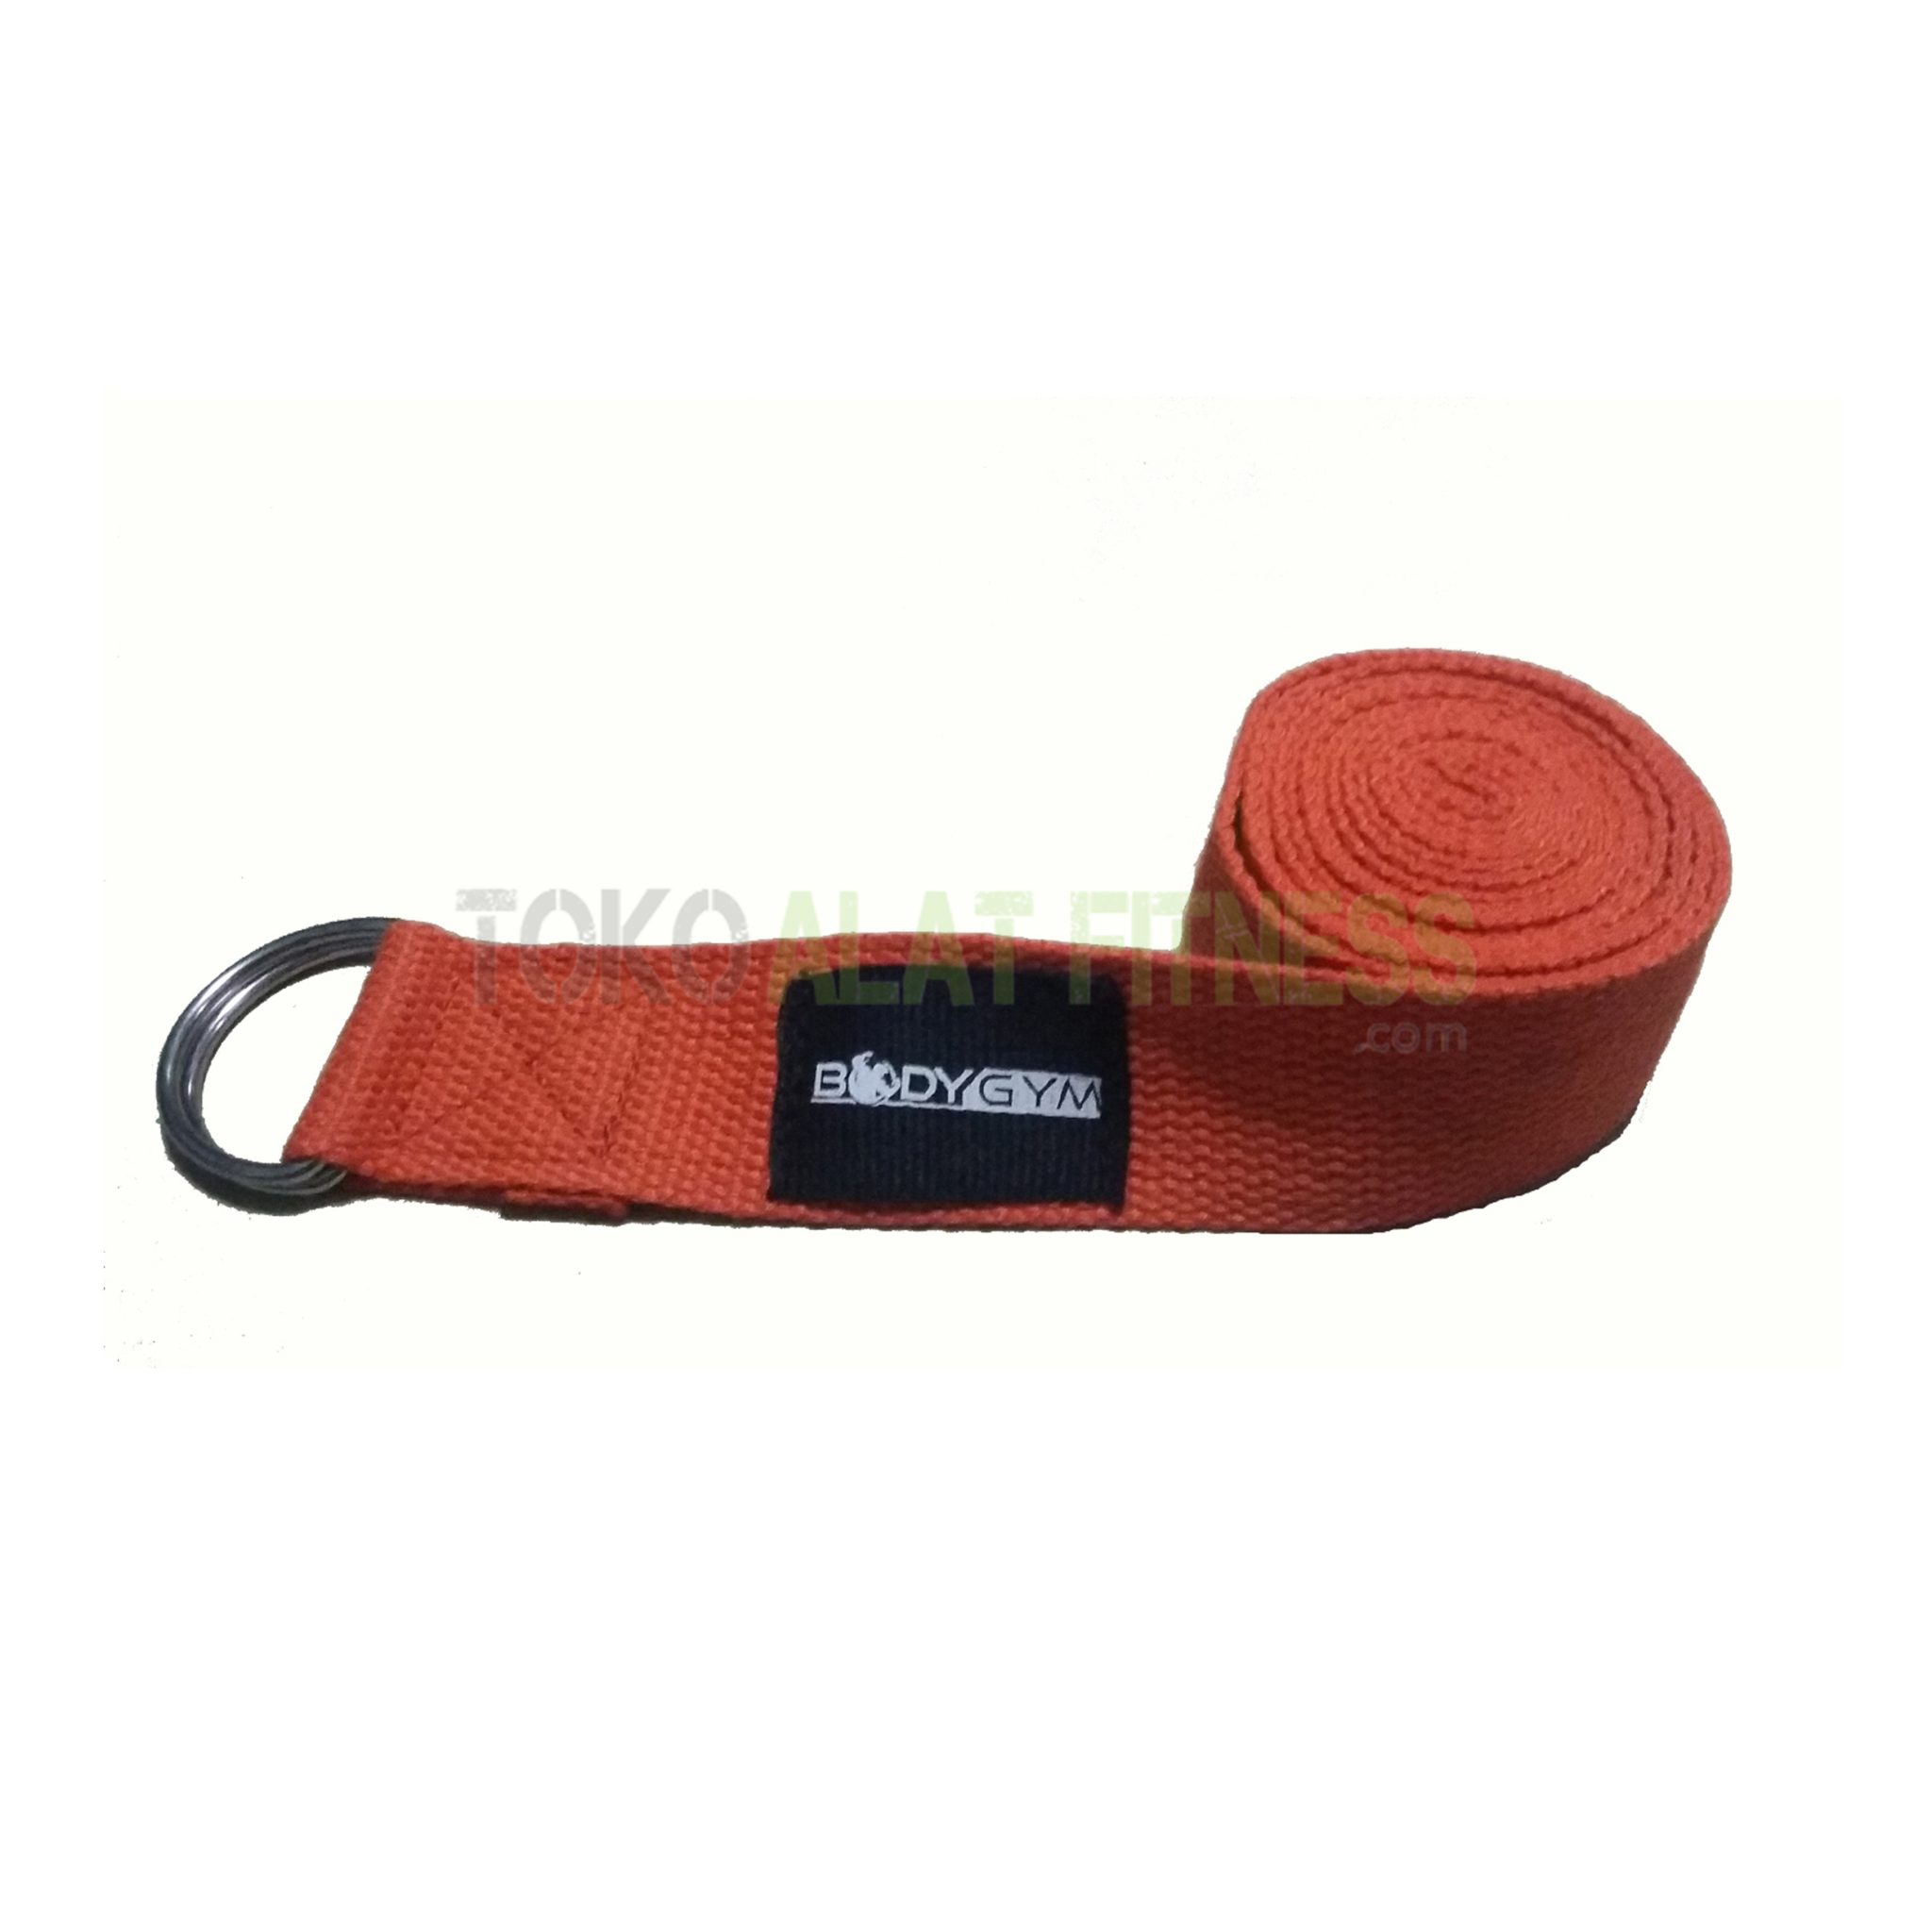 yoga strap orange - Yoga Strap 3.8 x 180cm Orange Body Gym